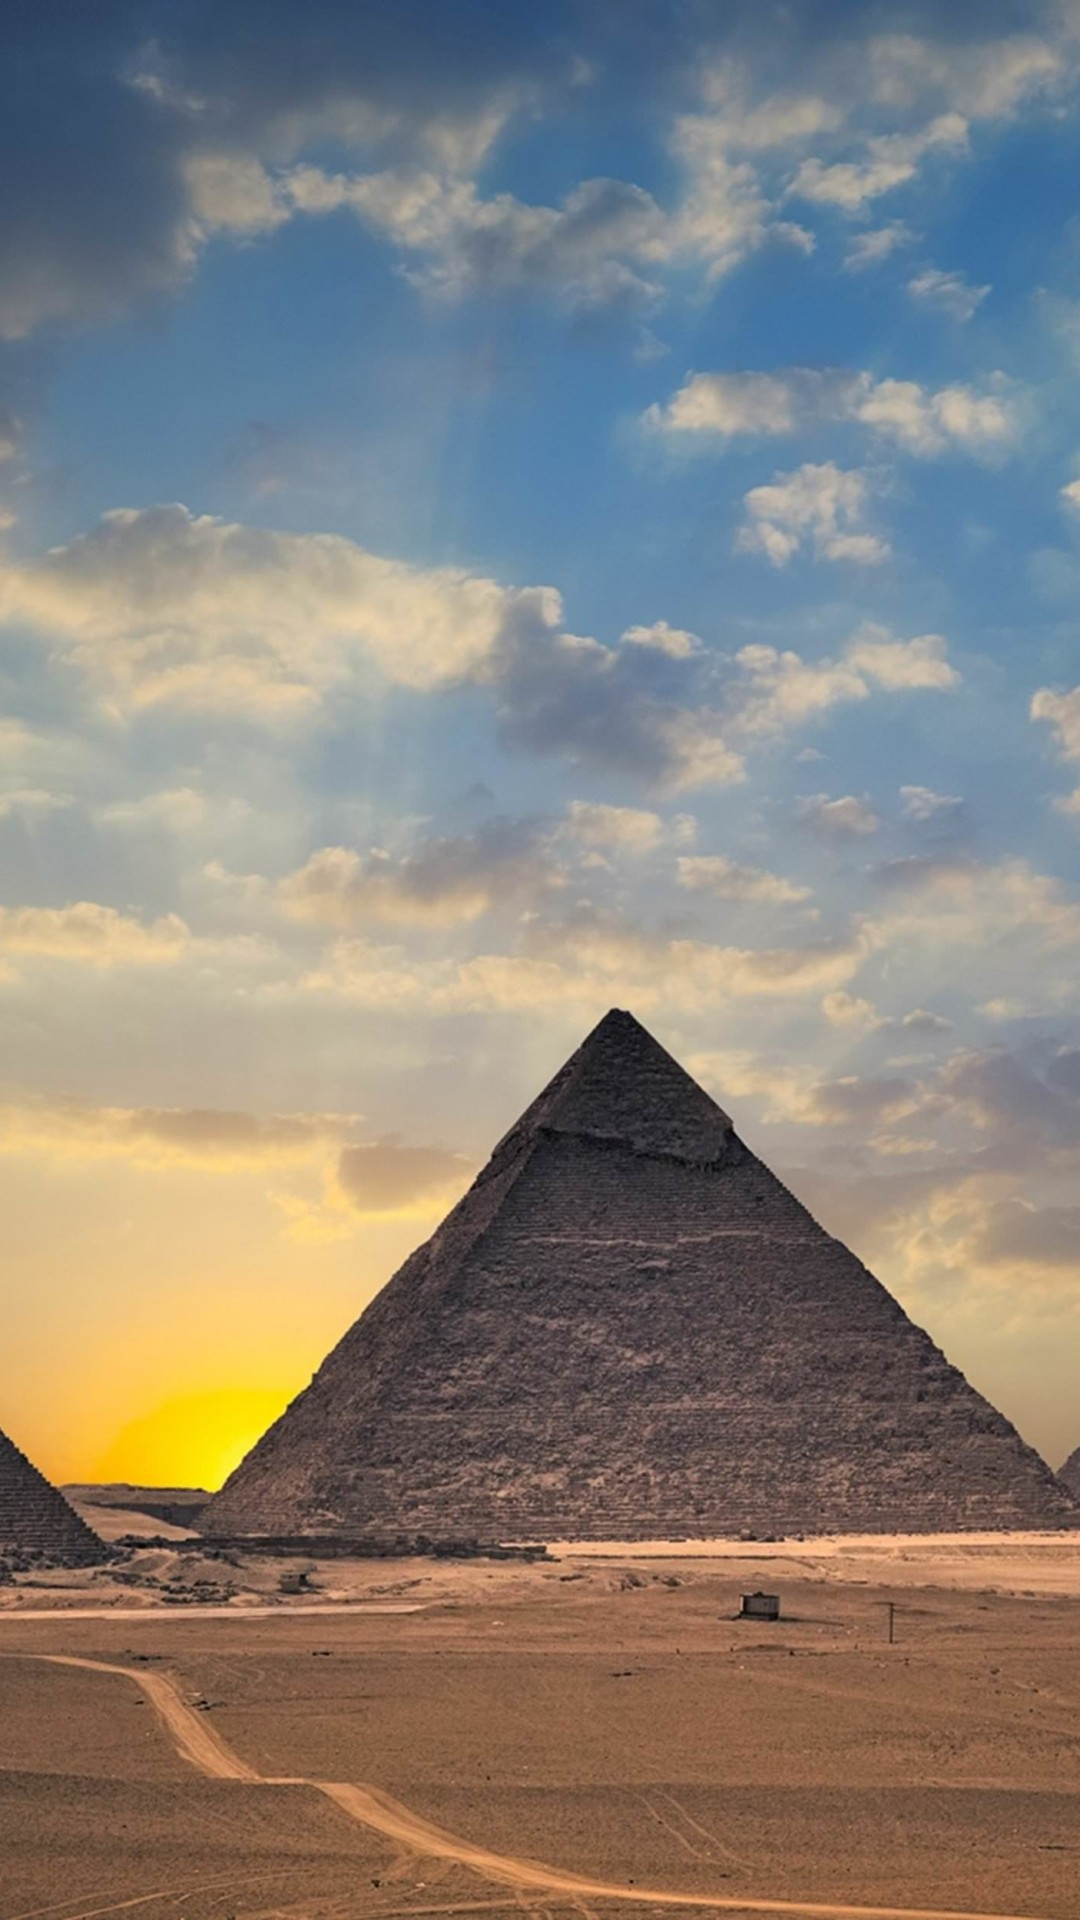 The Great Pyramids of Giza Wallpaper for SONY Xperia Z2